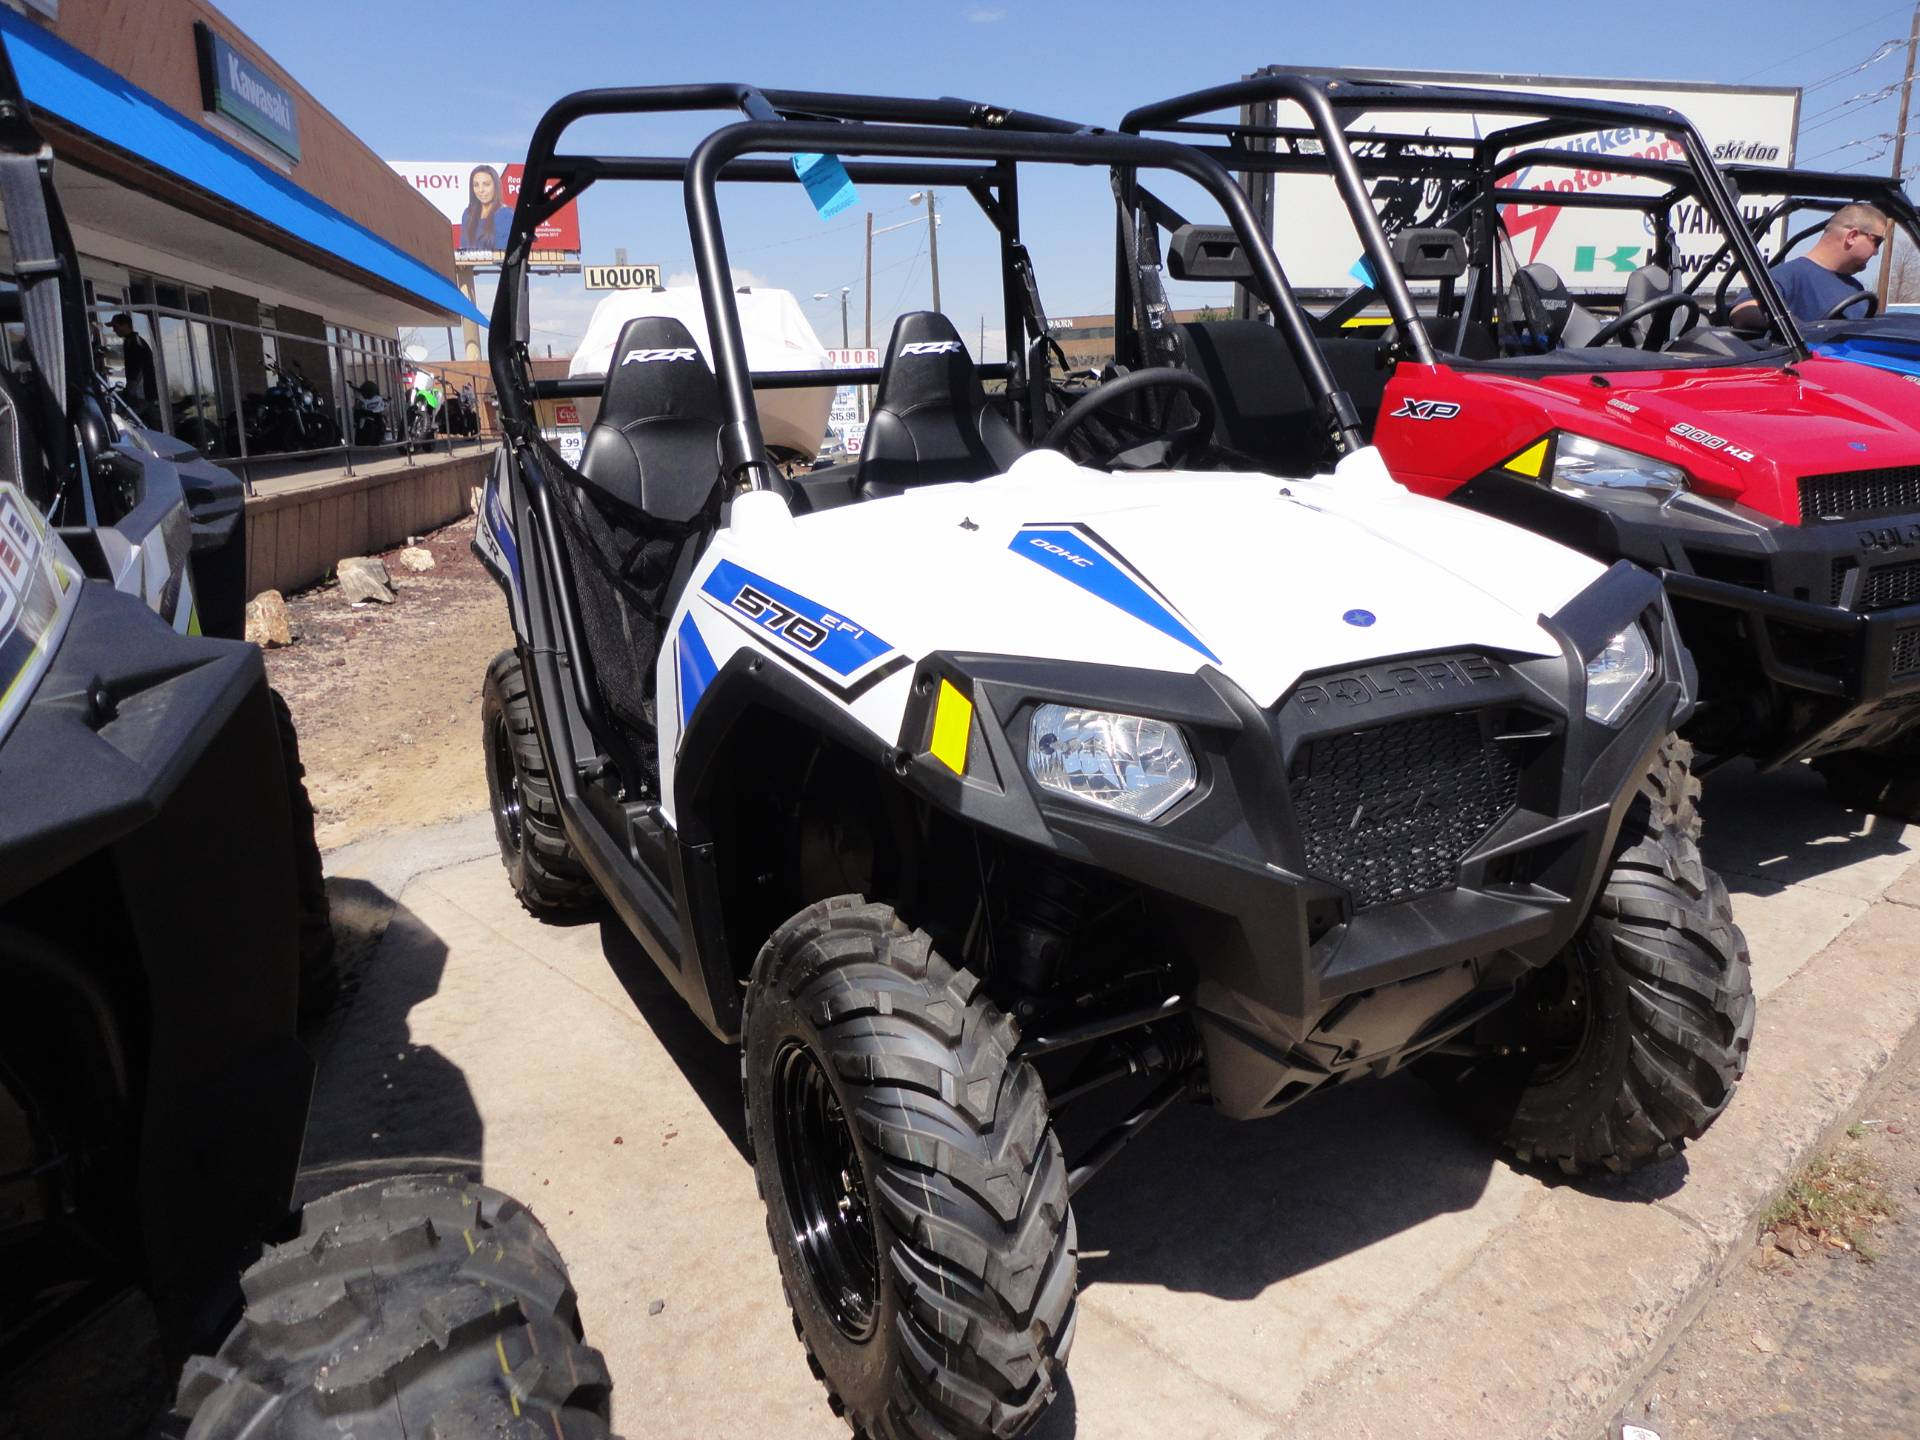 2018 Polaris RZR 570 in Denver, Colorado